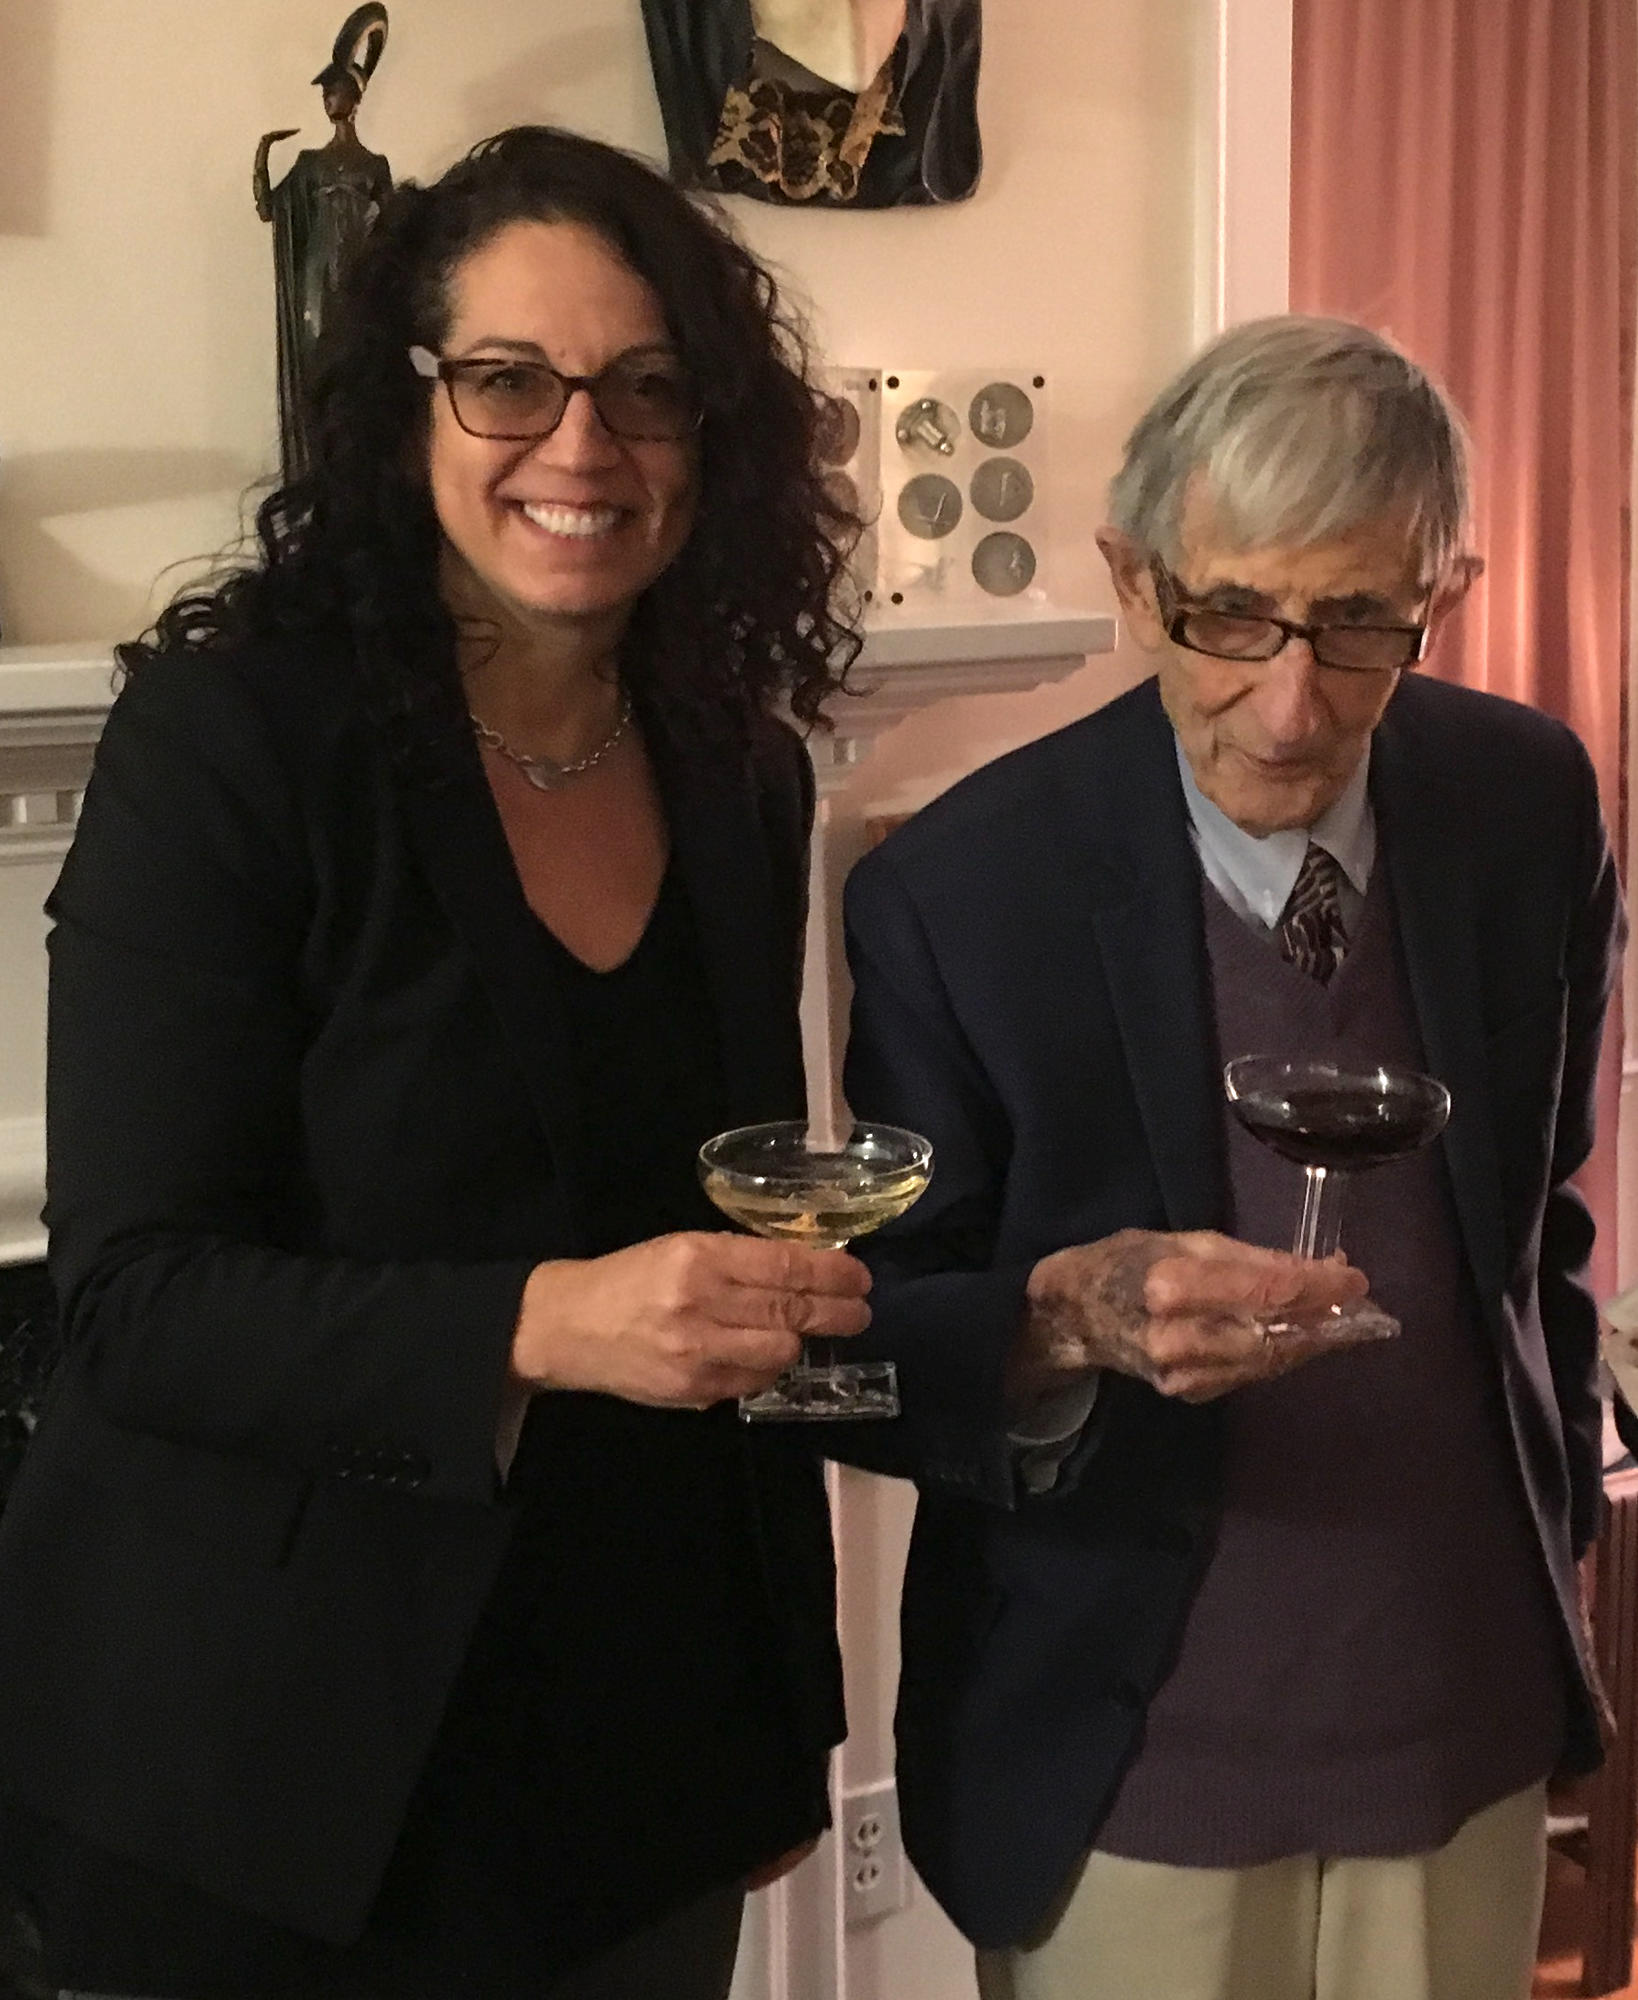 Freeman Dyson and Kristen Ghodsee 3